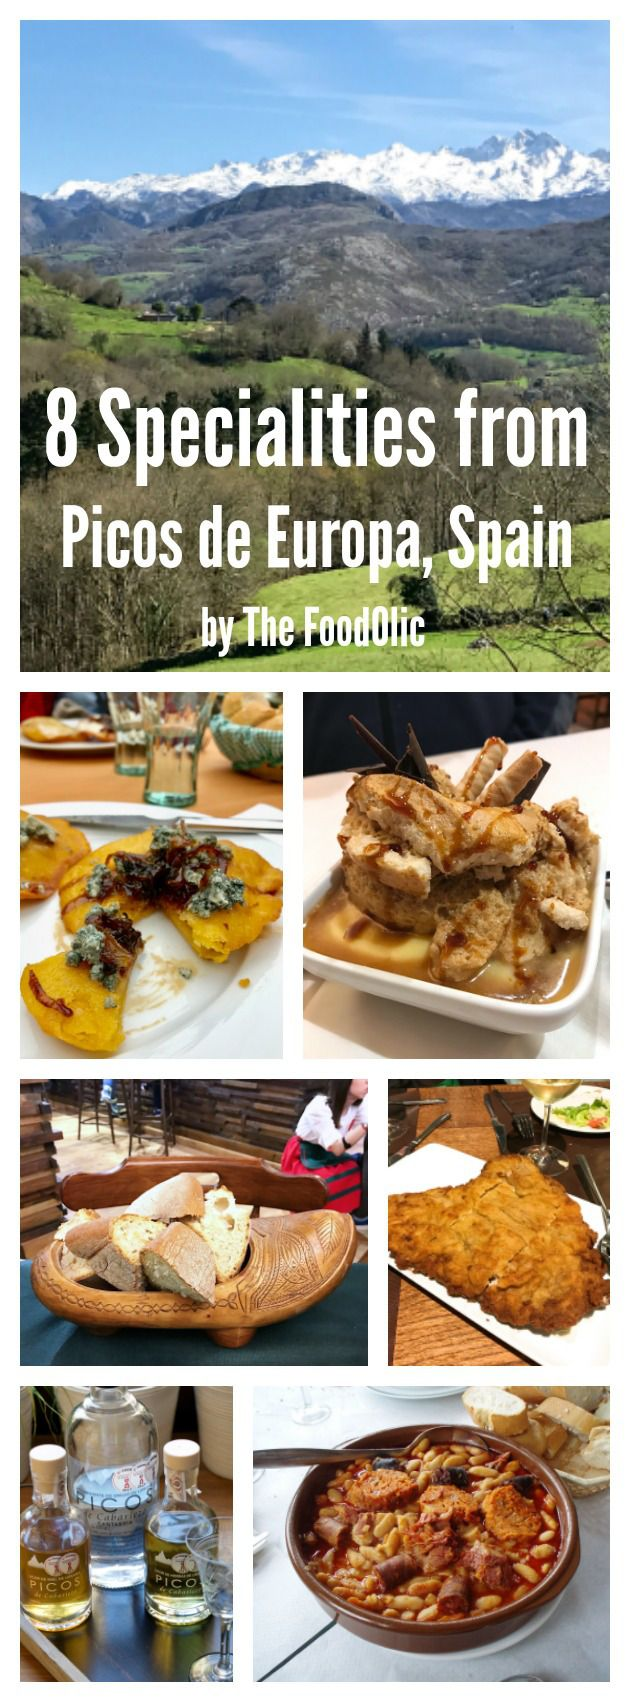 Specialities from the National Park Picos de Europa, Spain. #Spain #gastronomy #PicosdeEuropa